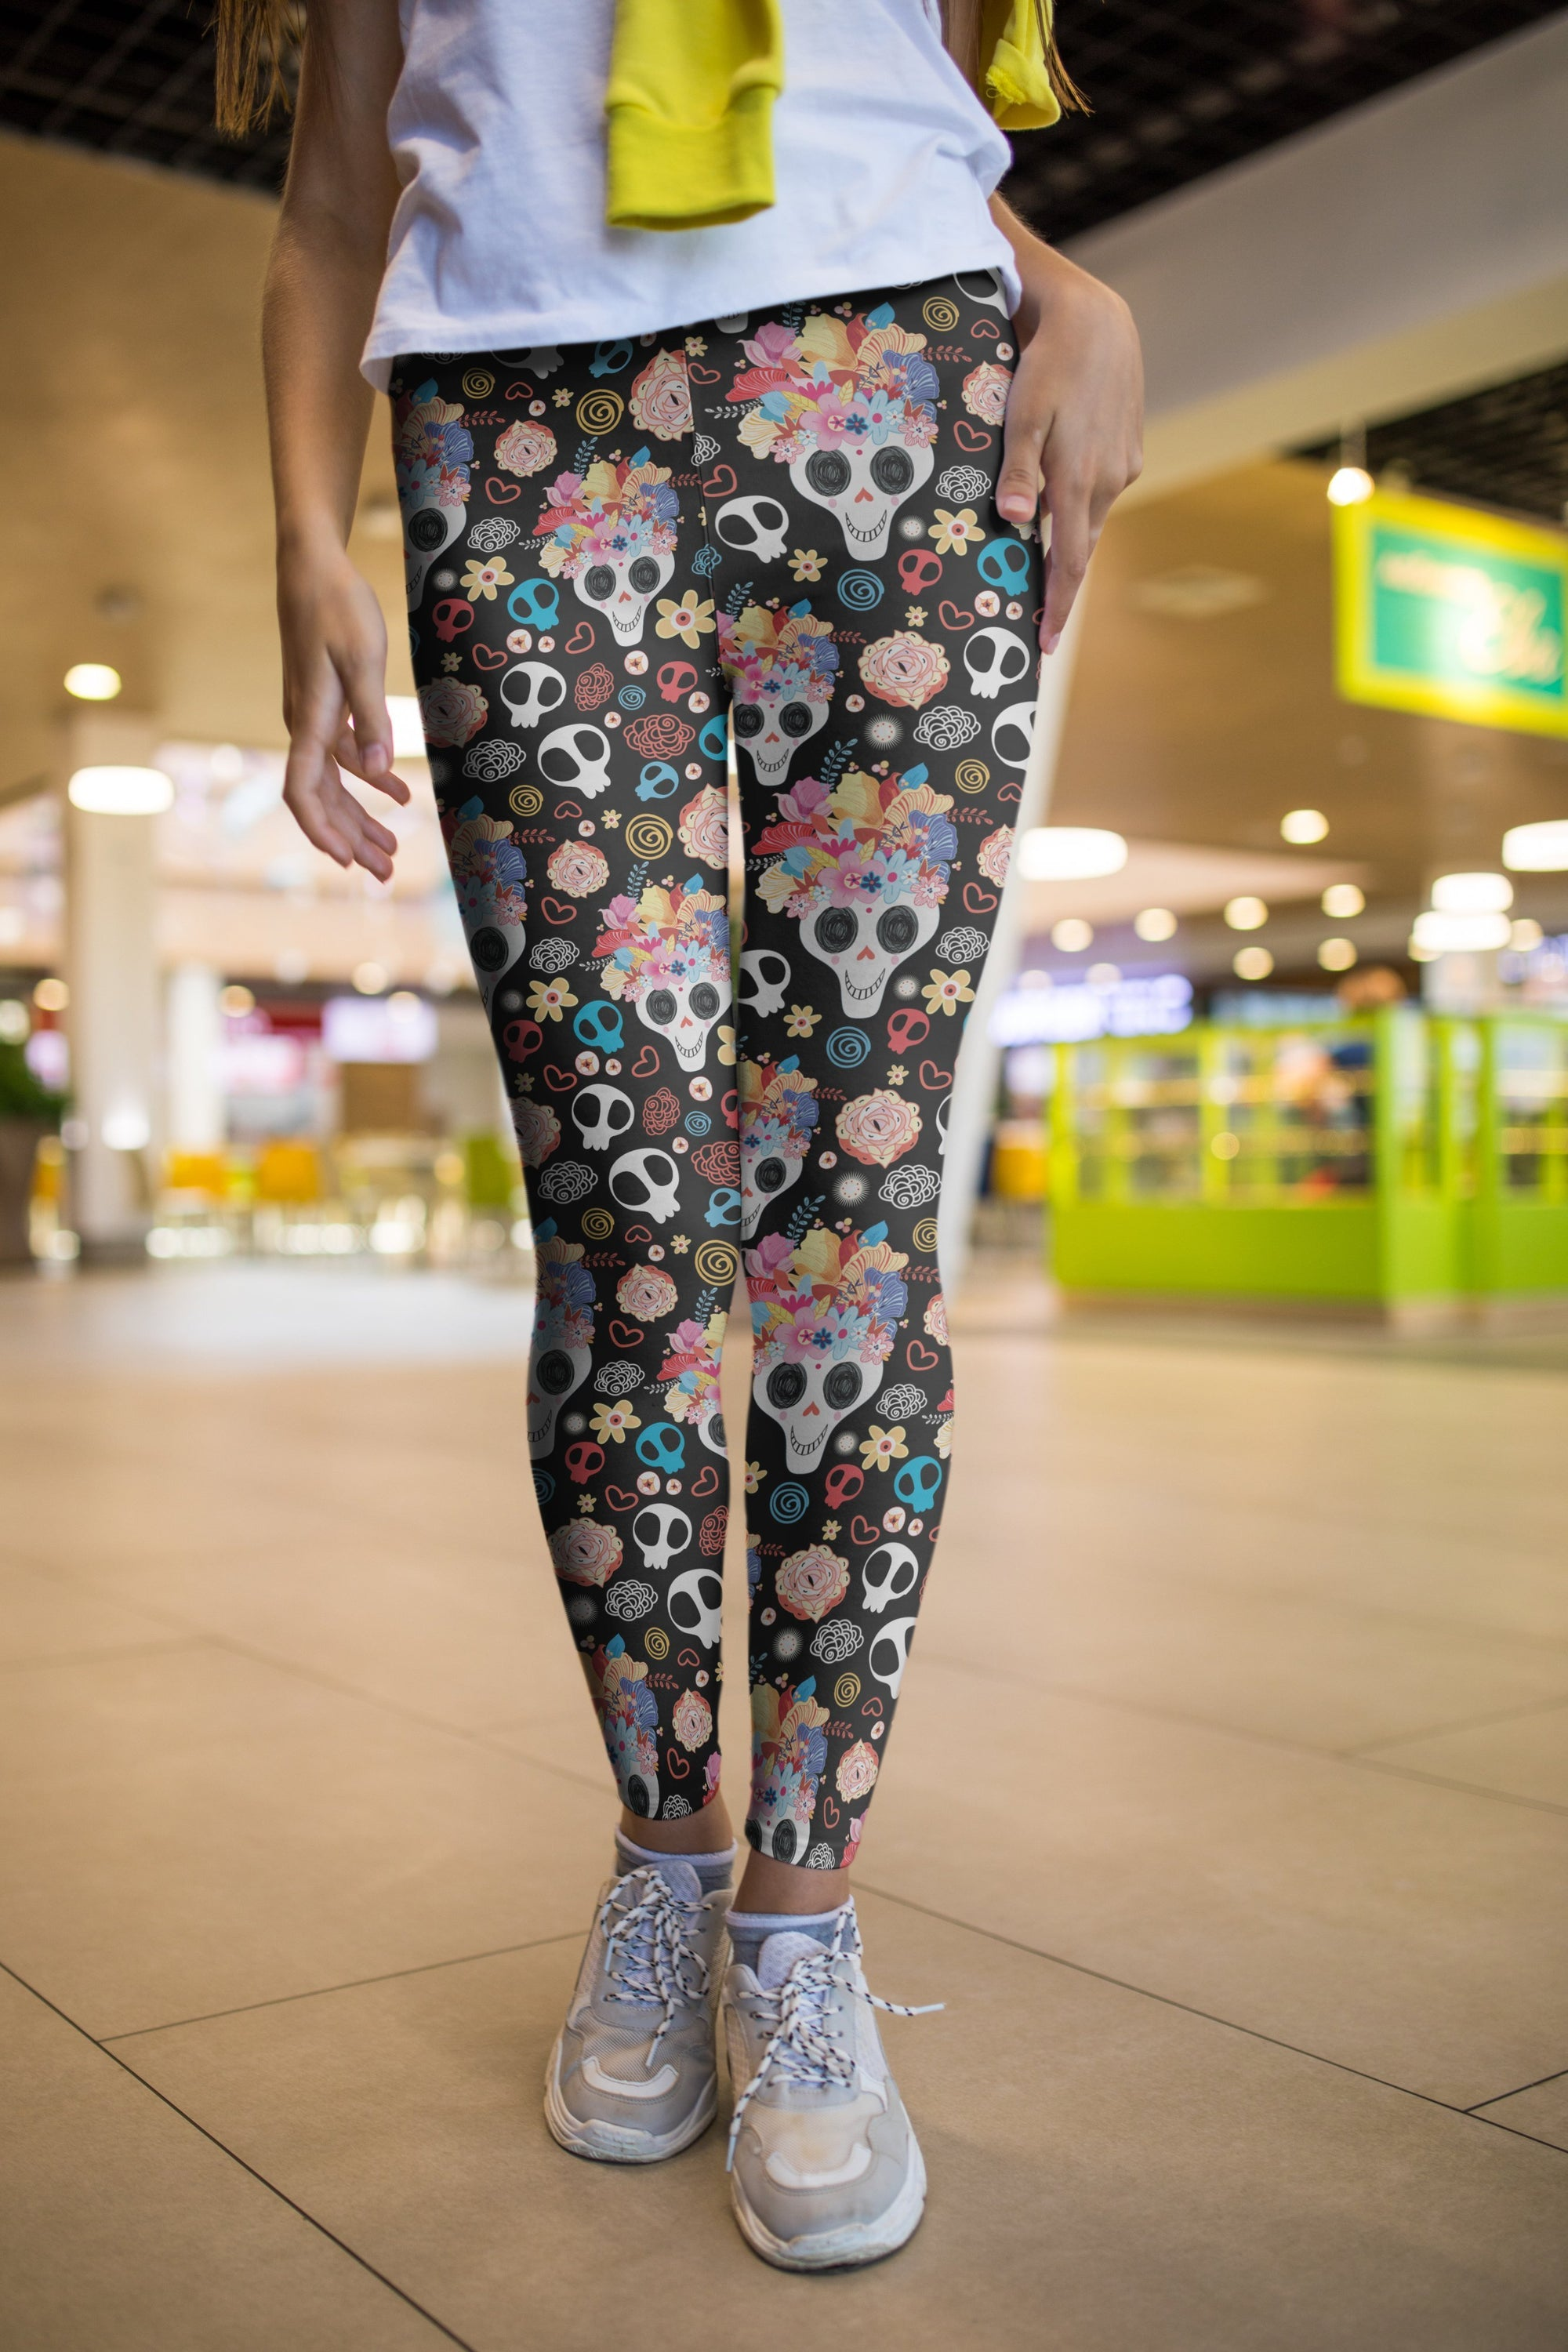 3D All Over Print Skull Flower Legging - Amaze Style™